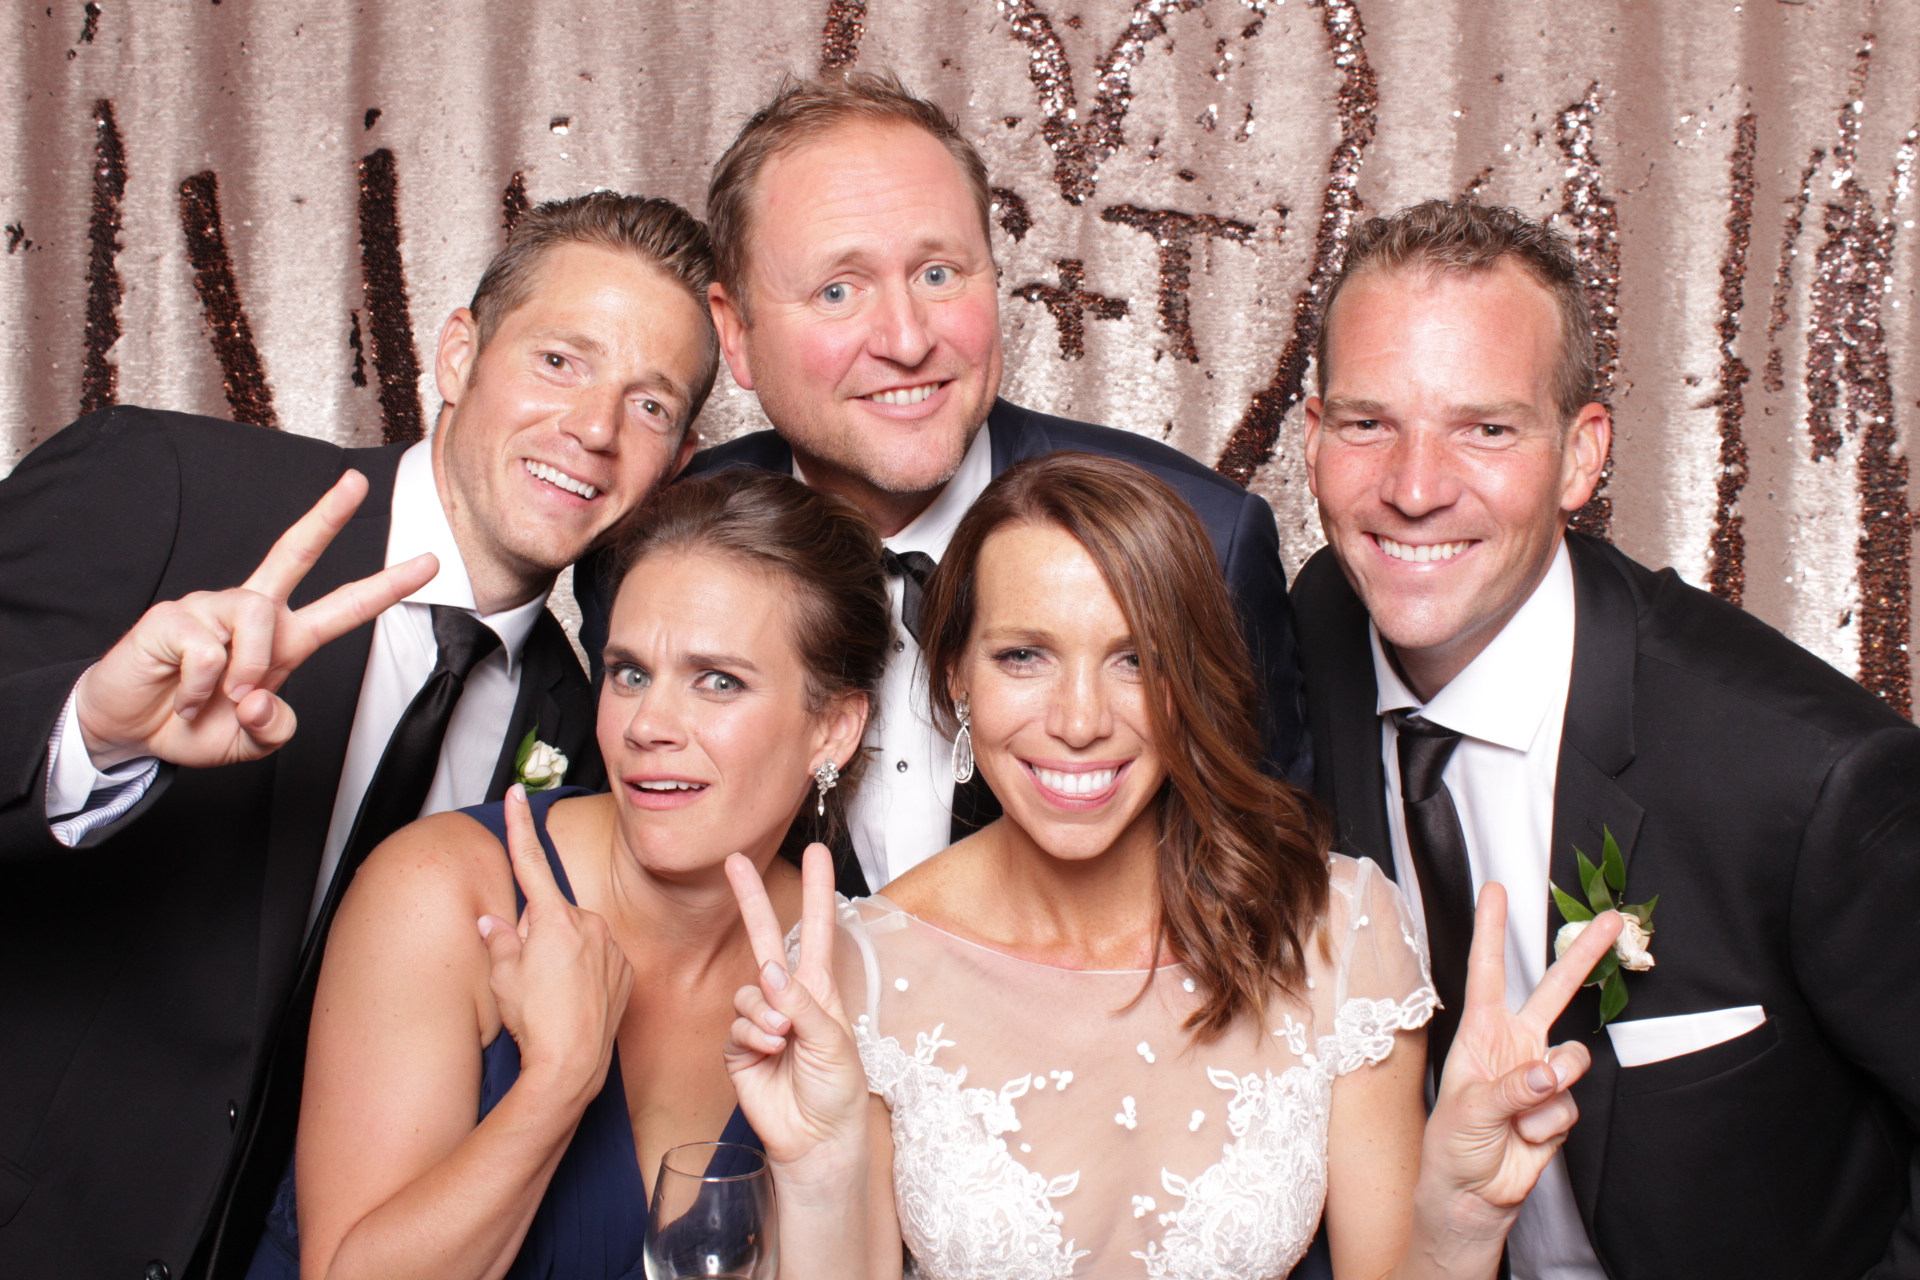 Minneapolis_Aria_Wedding_Photo_Booth (13).jpg